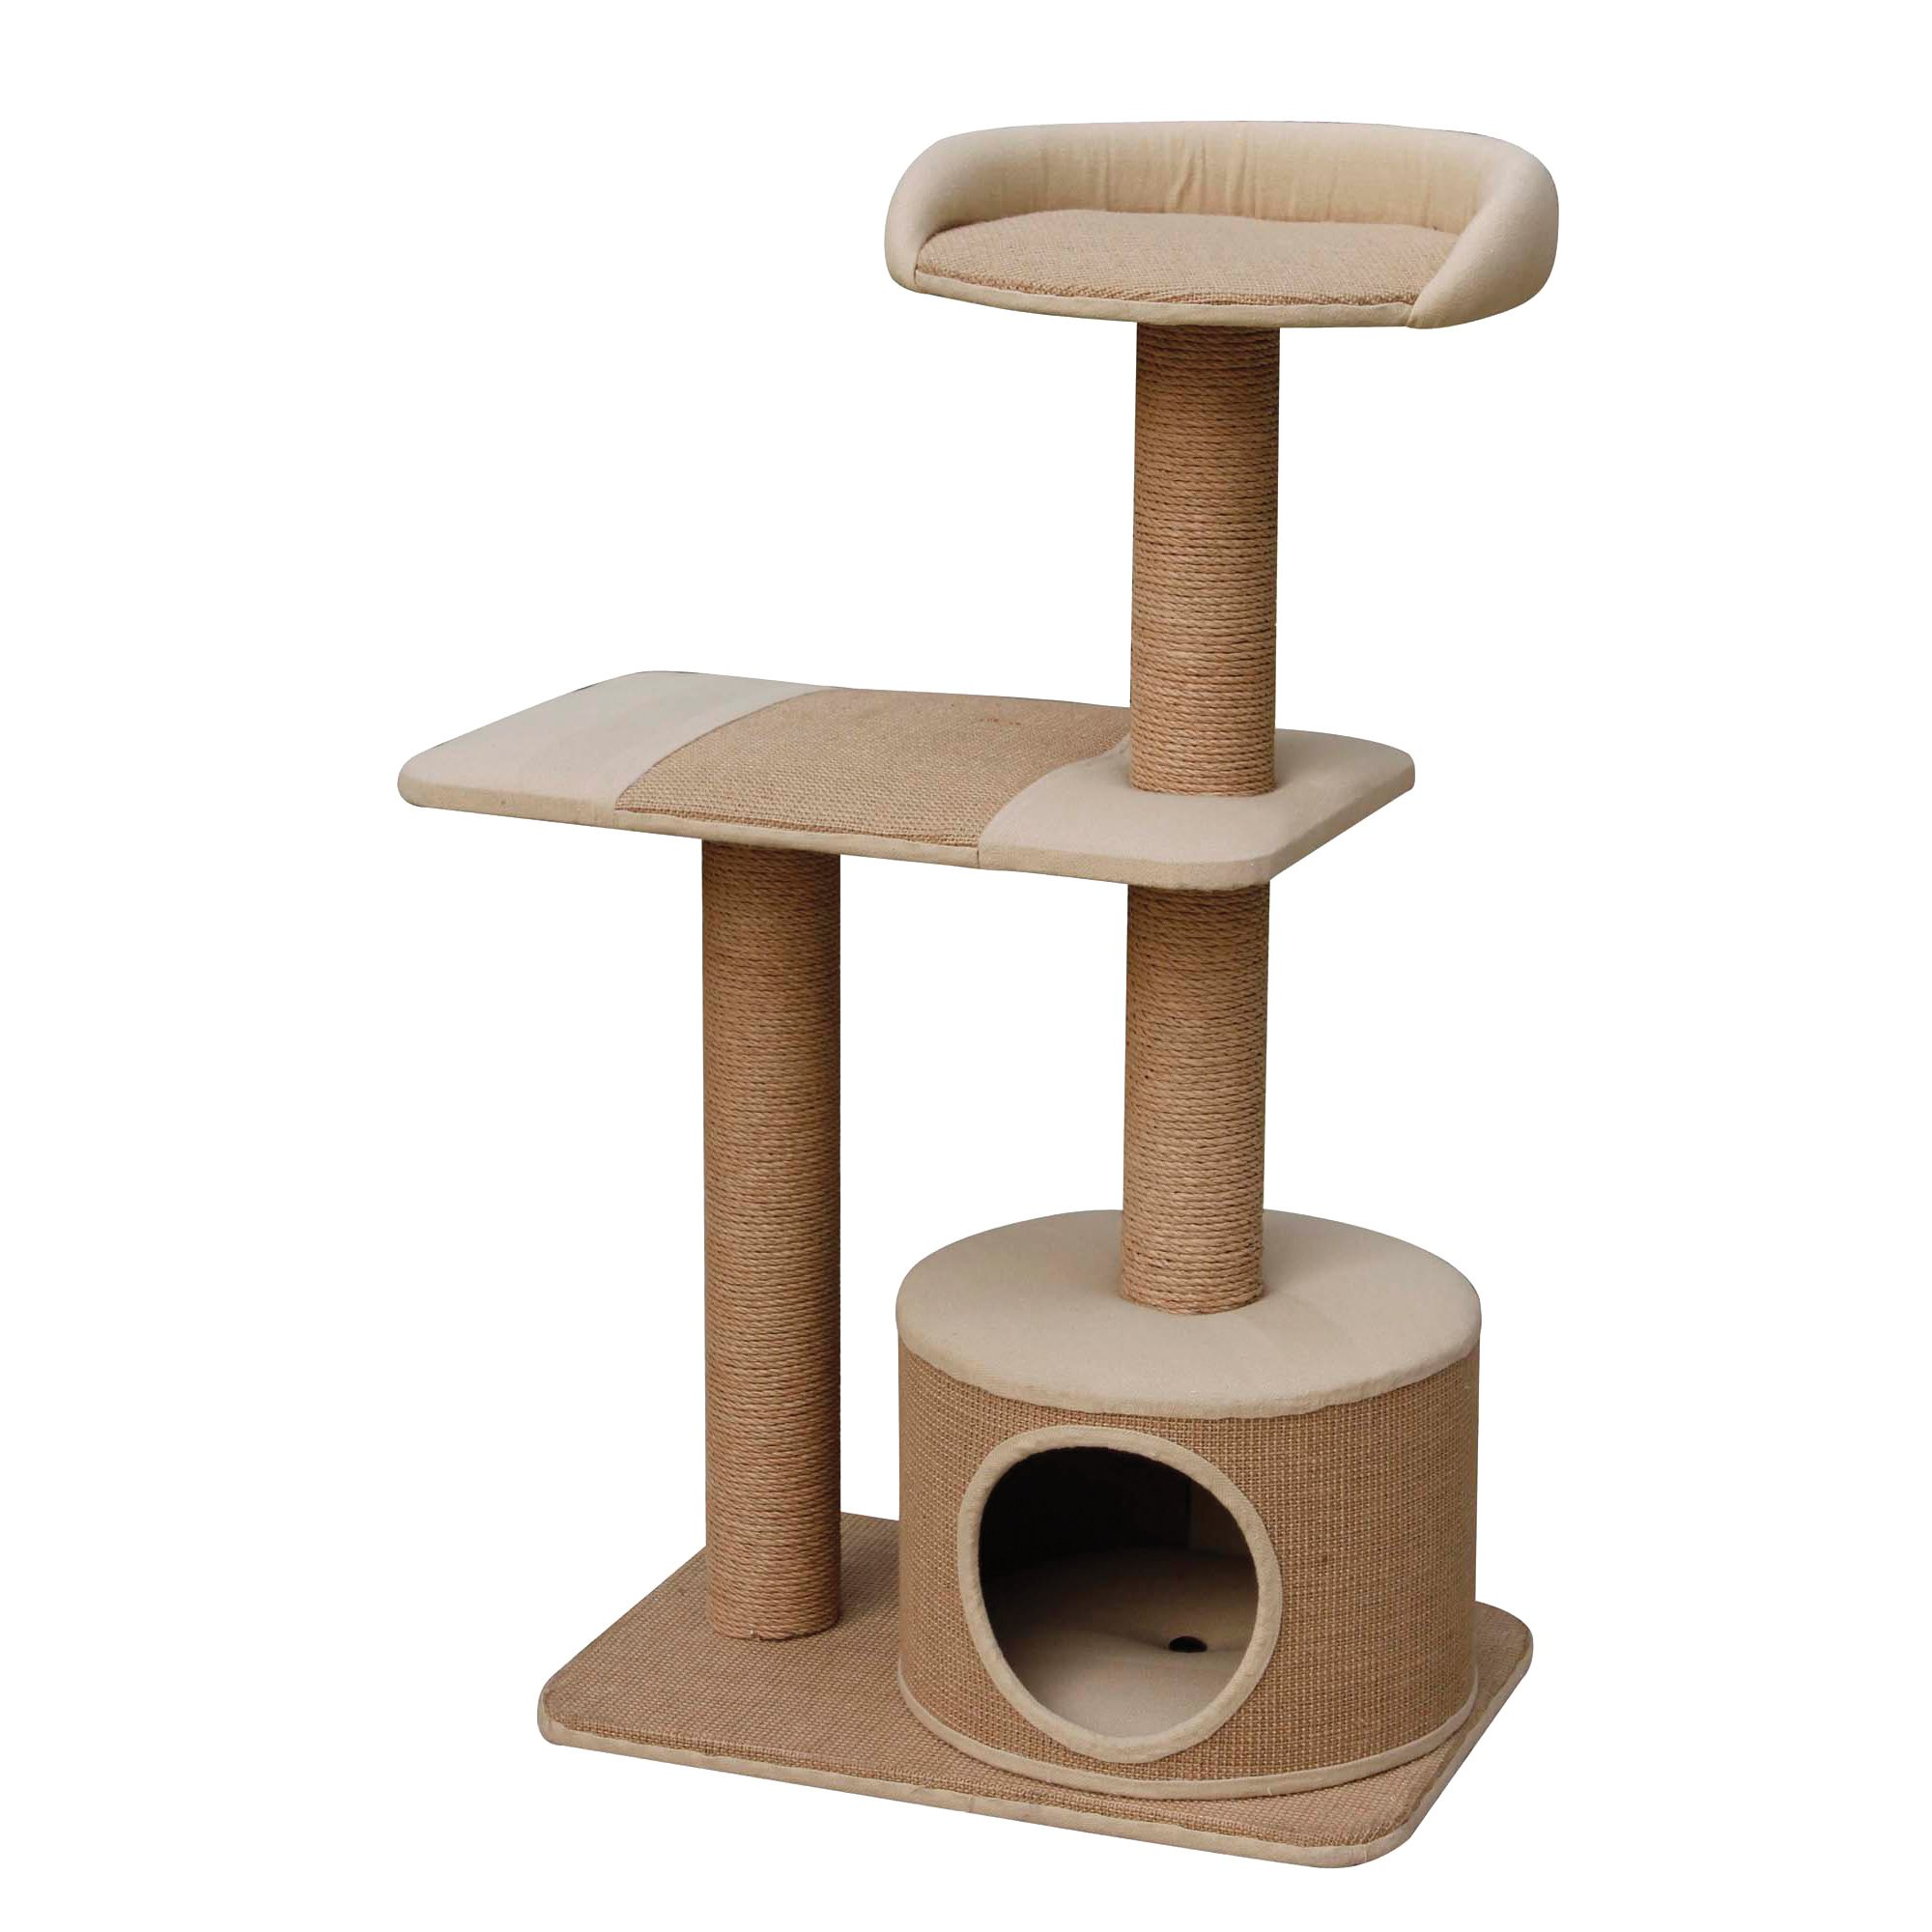 Cat Furniture: Cat Trees, Towers & Scratching Posts